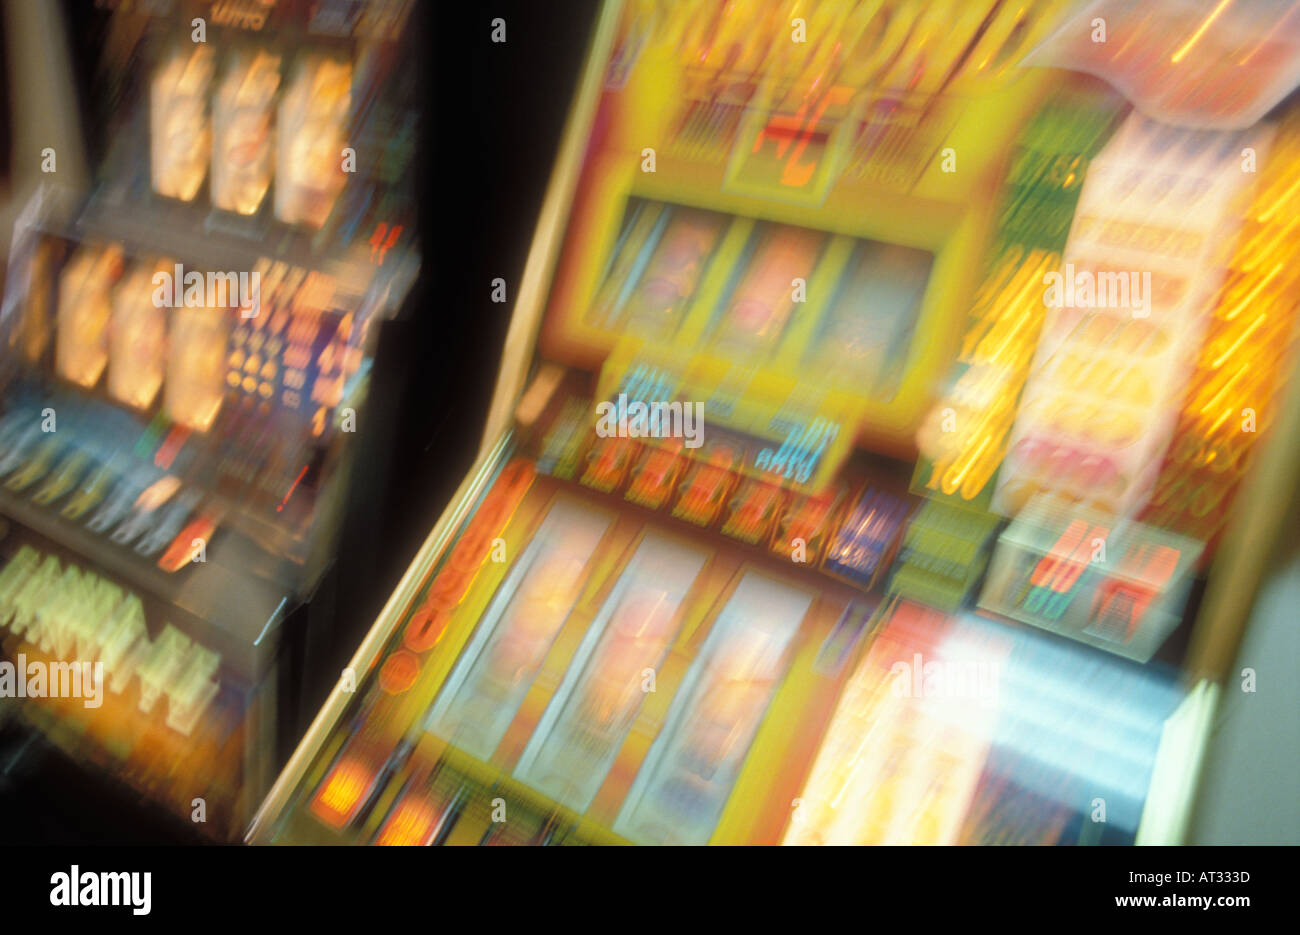 Arcade Money Machine Lucky Luck Random Two Moved Exposure Blurred